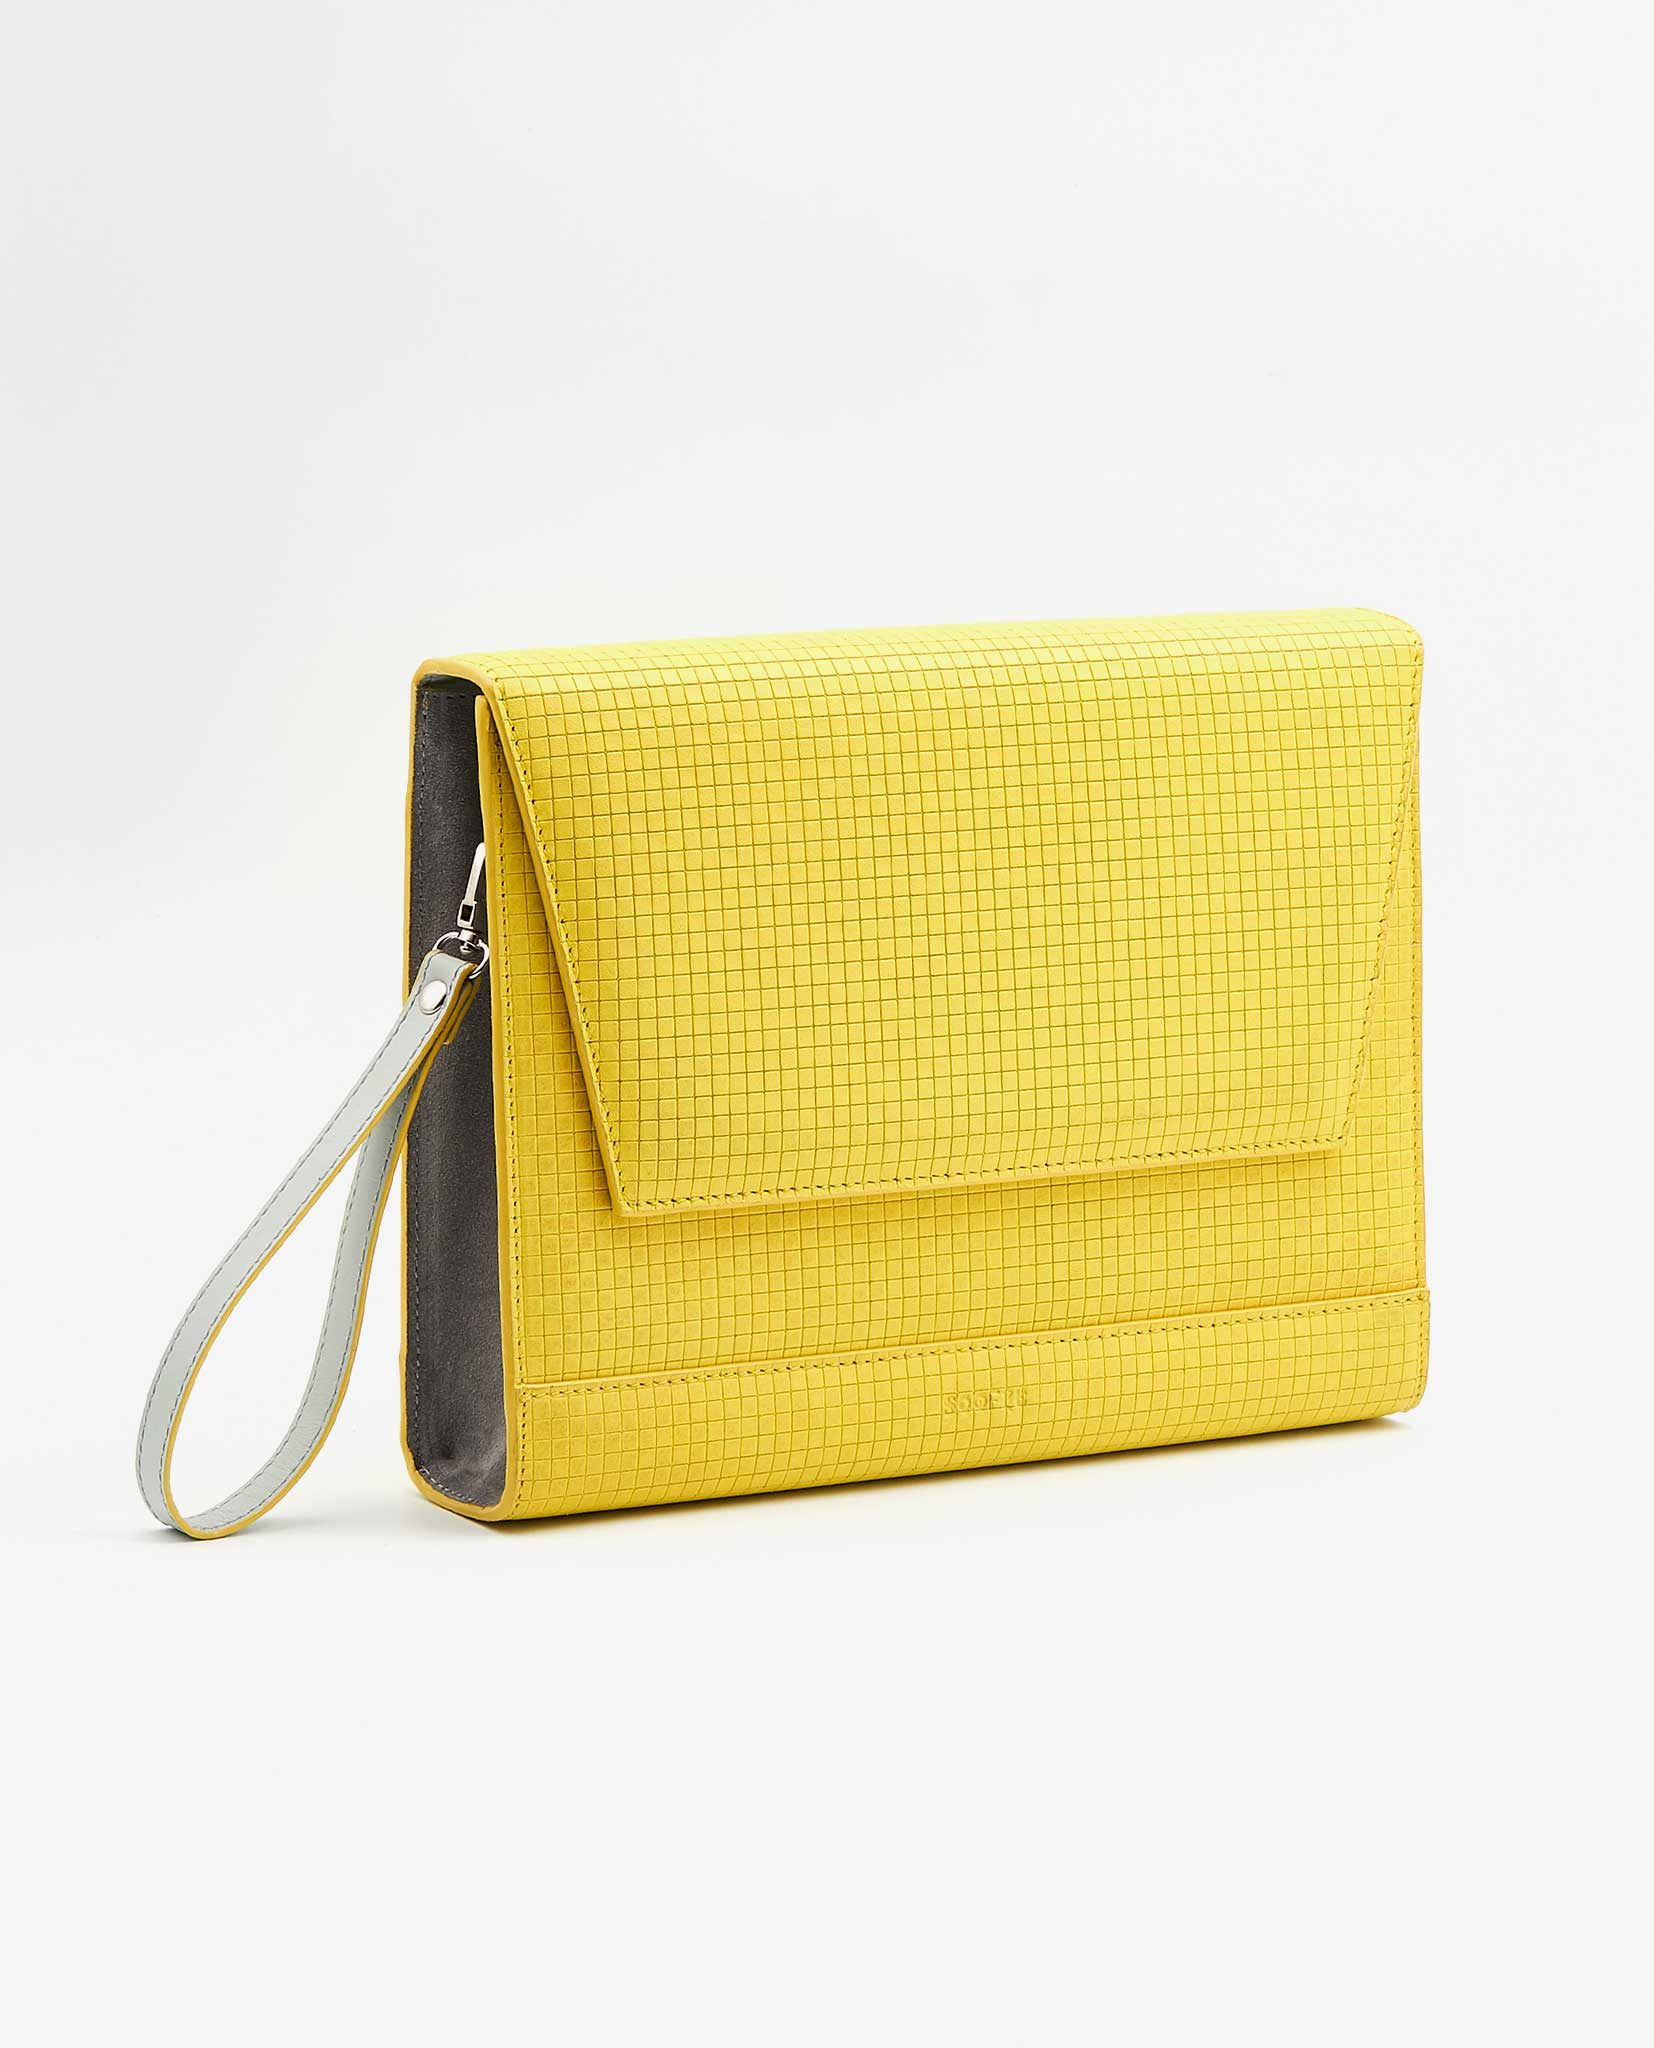 SOOFRE Berlin unique Clutch squared yellow / dove grey